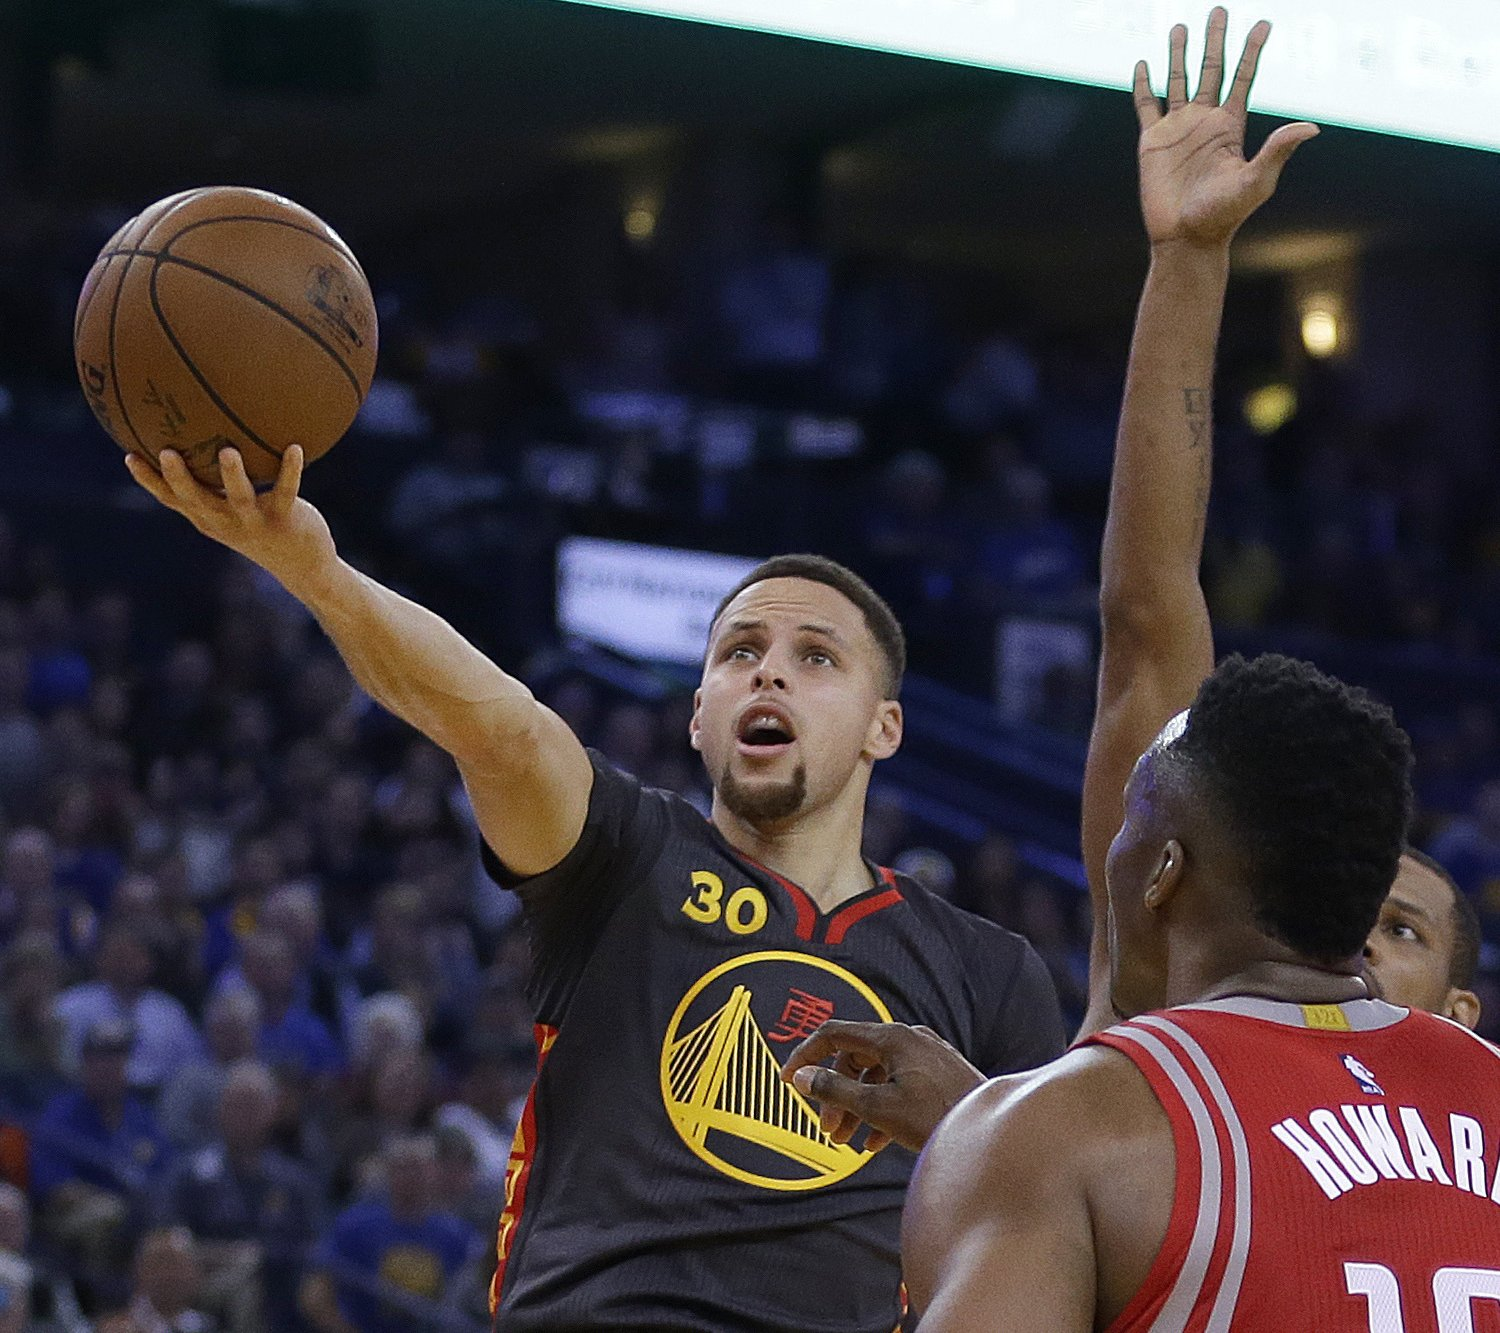 Warriors Vs Rockets Live Stream Game 3: 2016 NBA Playoffs: Warriors Vs. Rockets 1st-Round Series